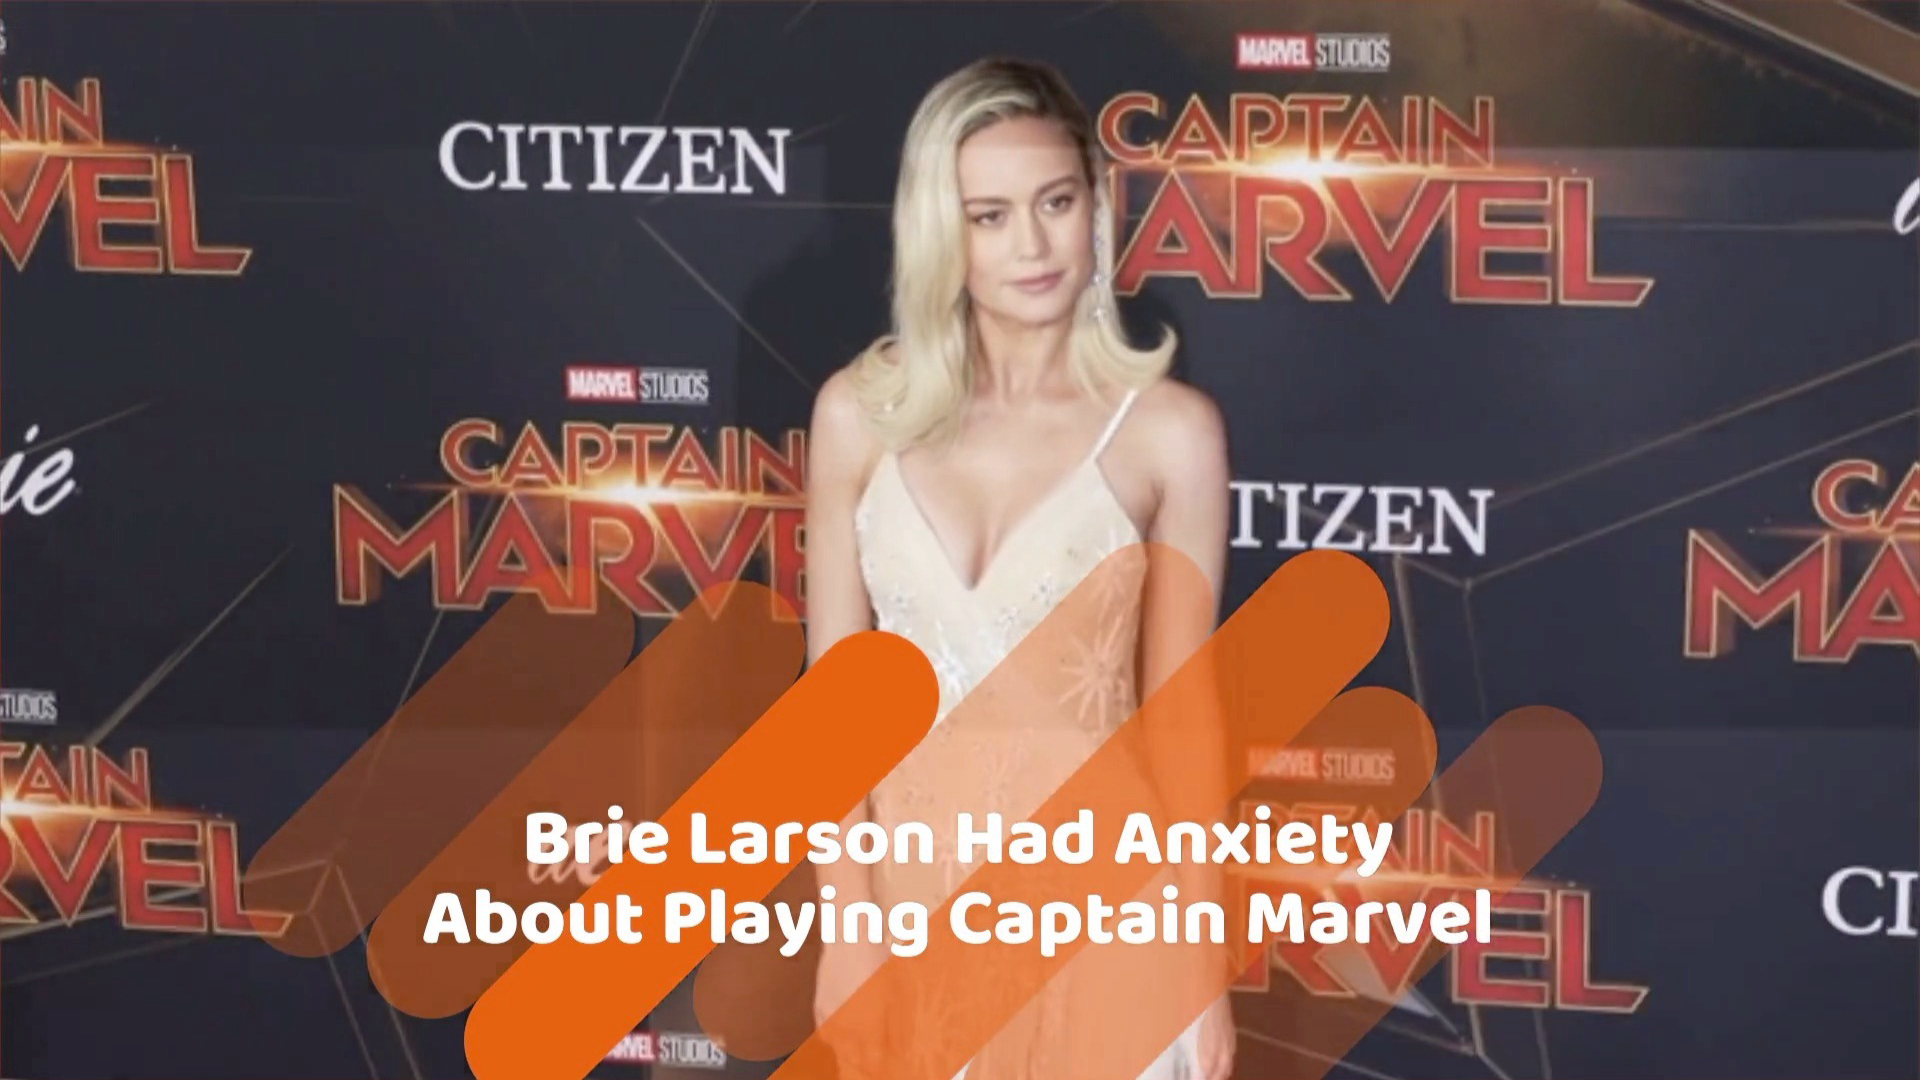 Brie Larson Gets Anxiety